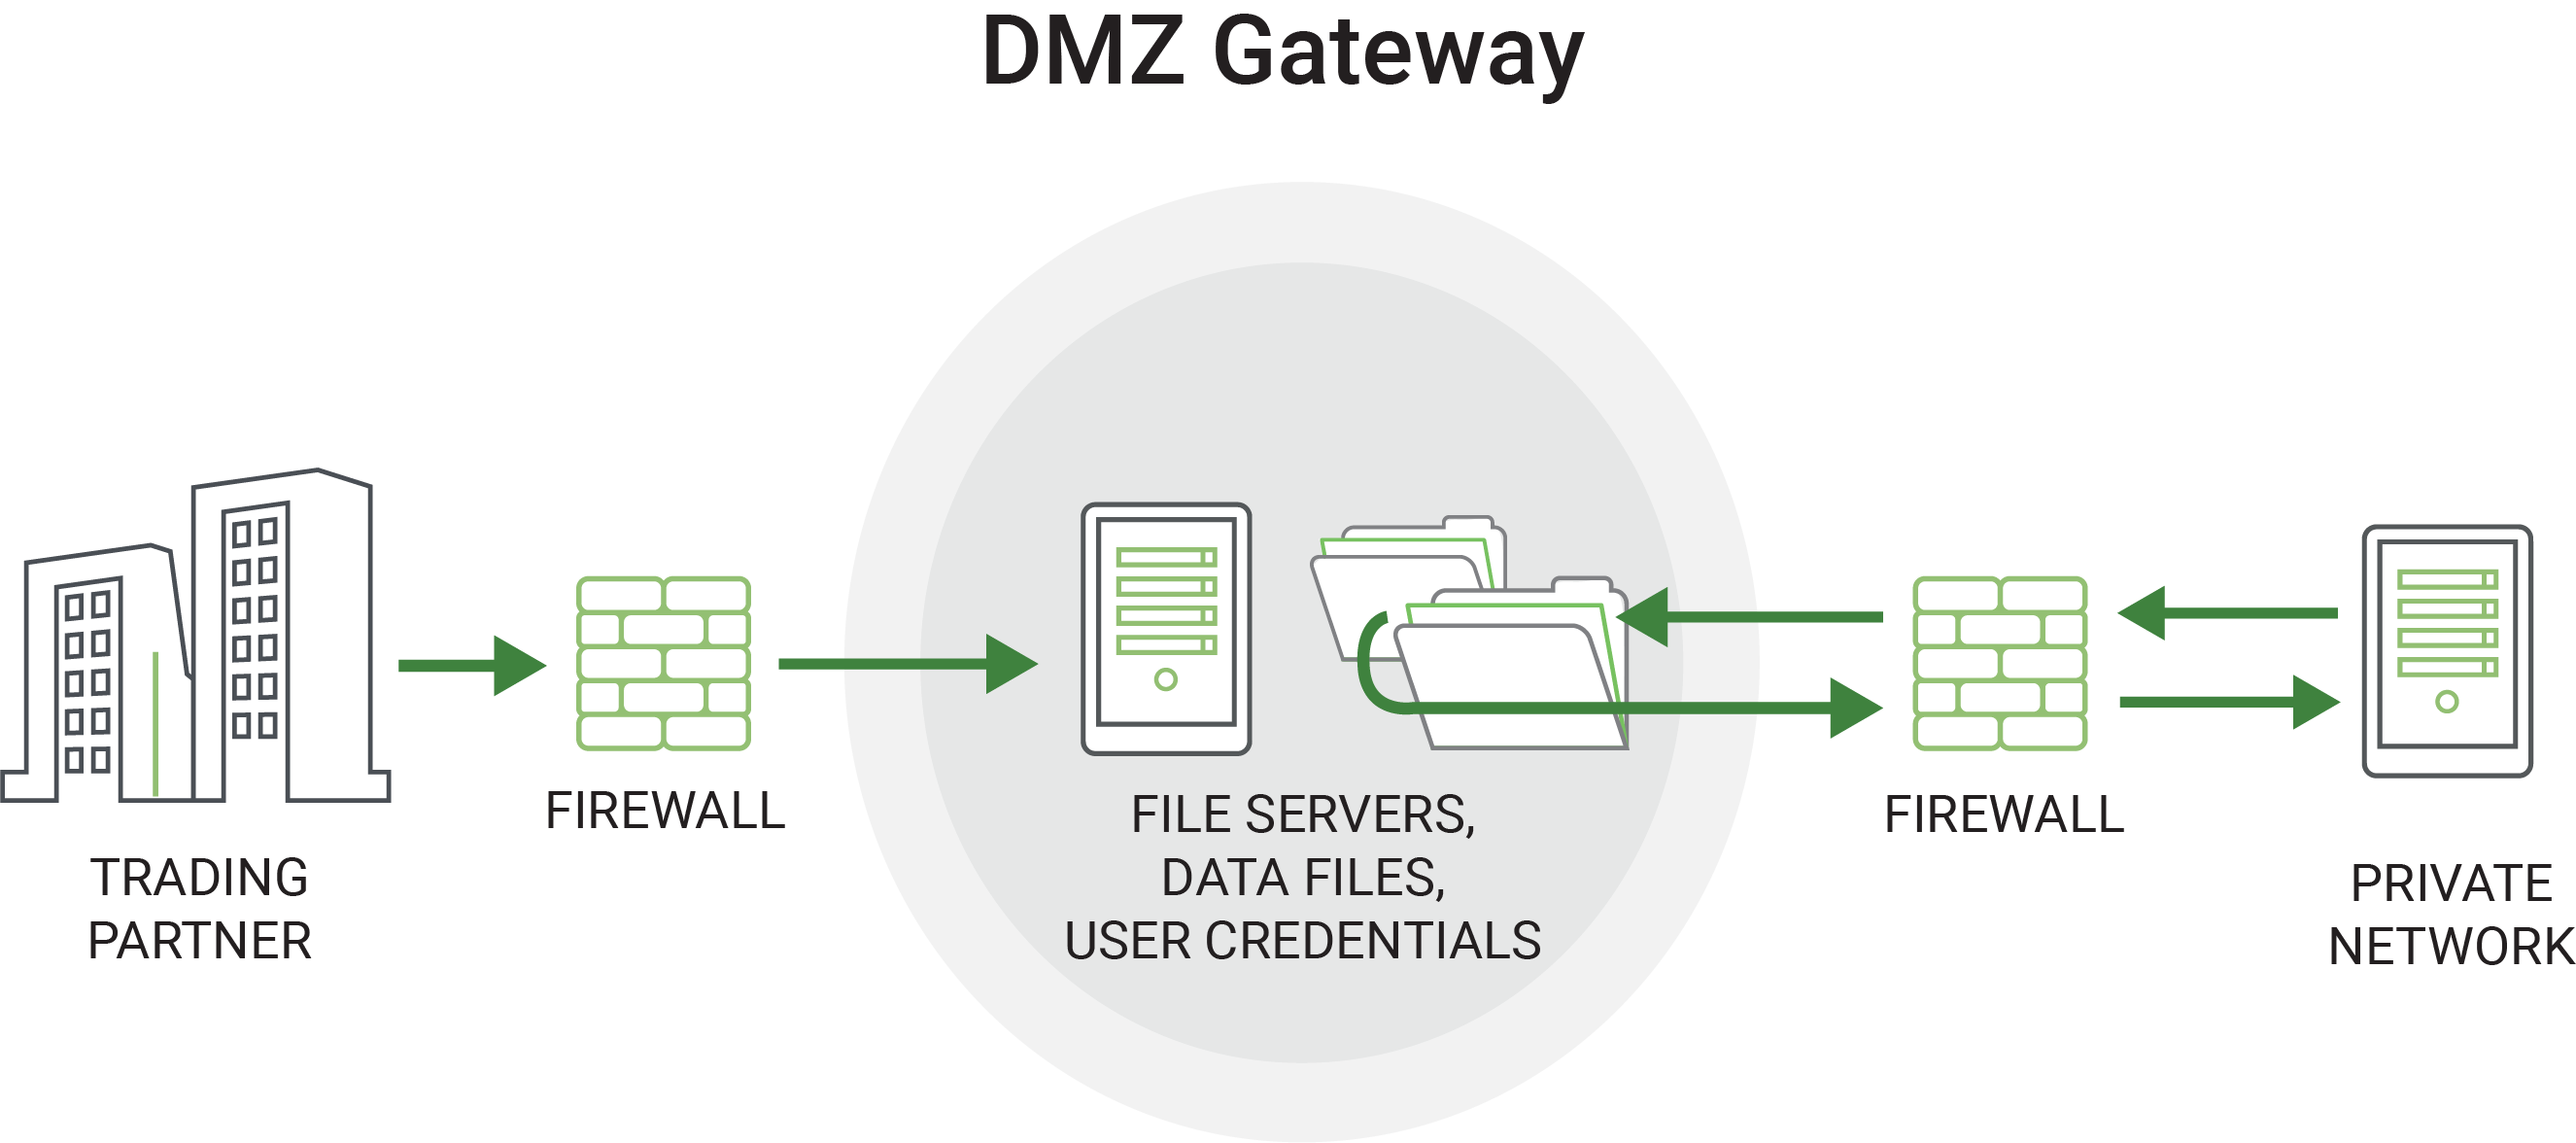 DMZ Gateway protects essential files and data exchanges between trading partners and private networks by using firewalls on either end.